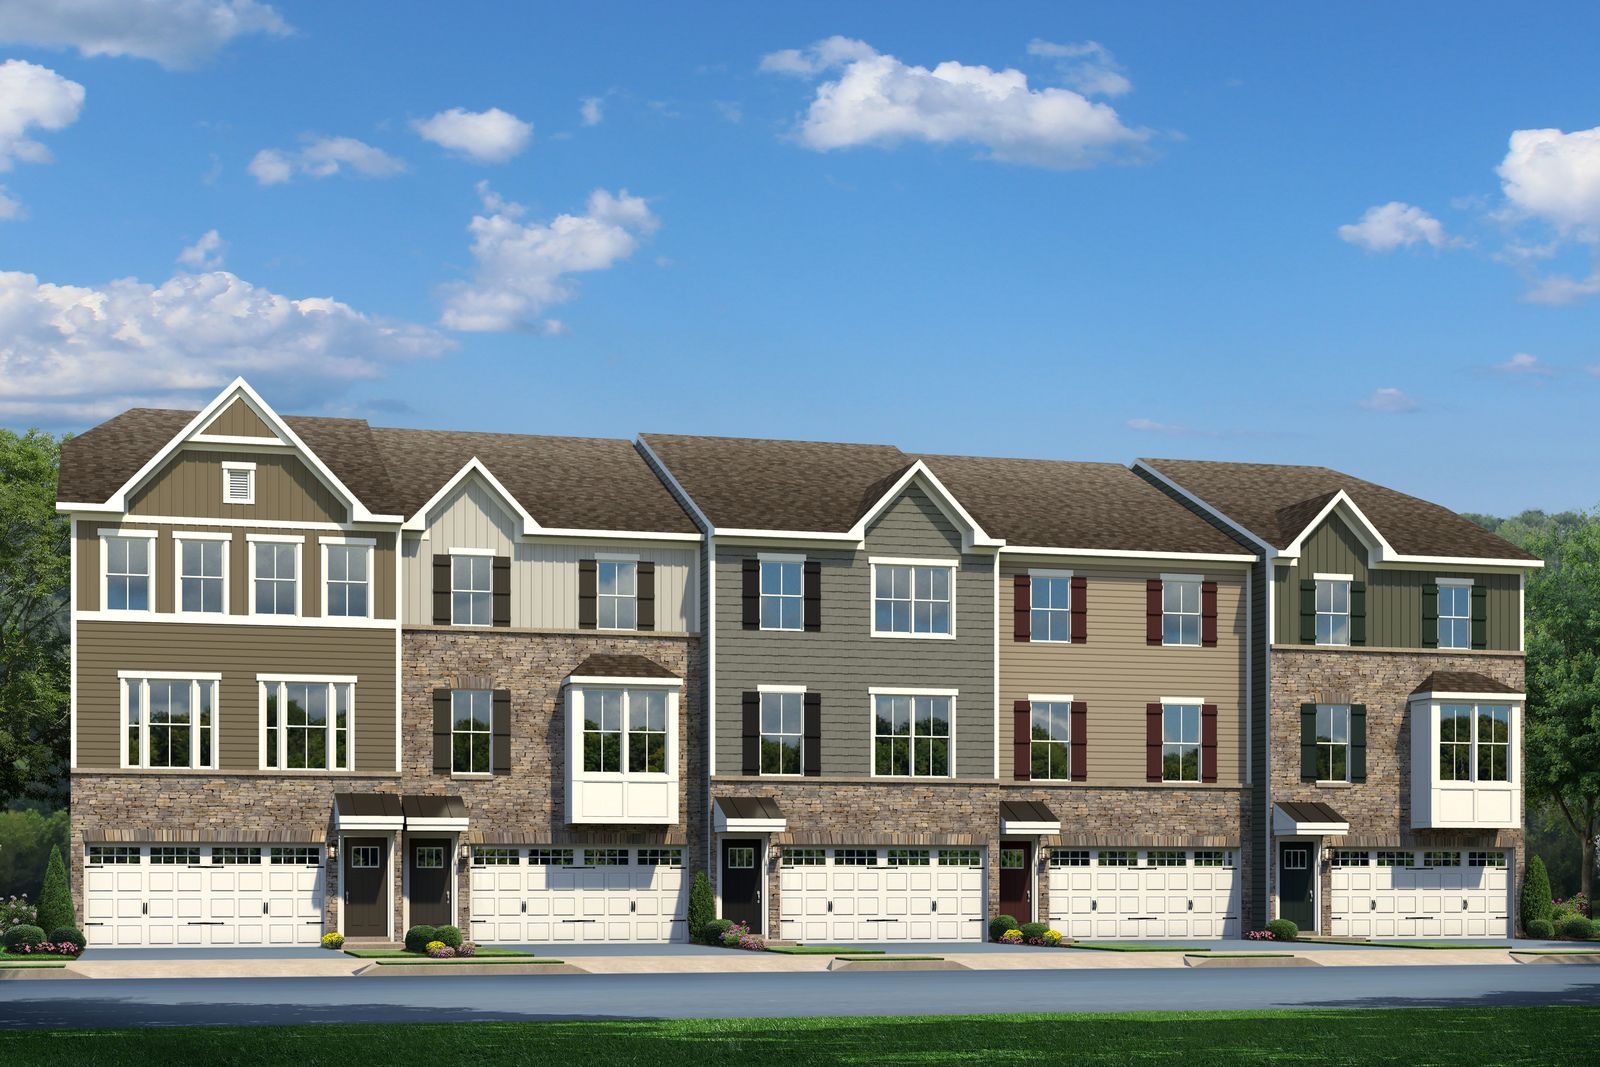 WELCOME TO HIGHPOINT AT DOWNINGTOWN:Theonly new townhomes with finished basements, located in Downingtown schools, minutes to Wegmans, from the upper $400s.Click here to join the VIP list for exclusive pricing and incentives!